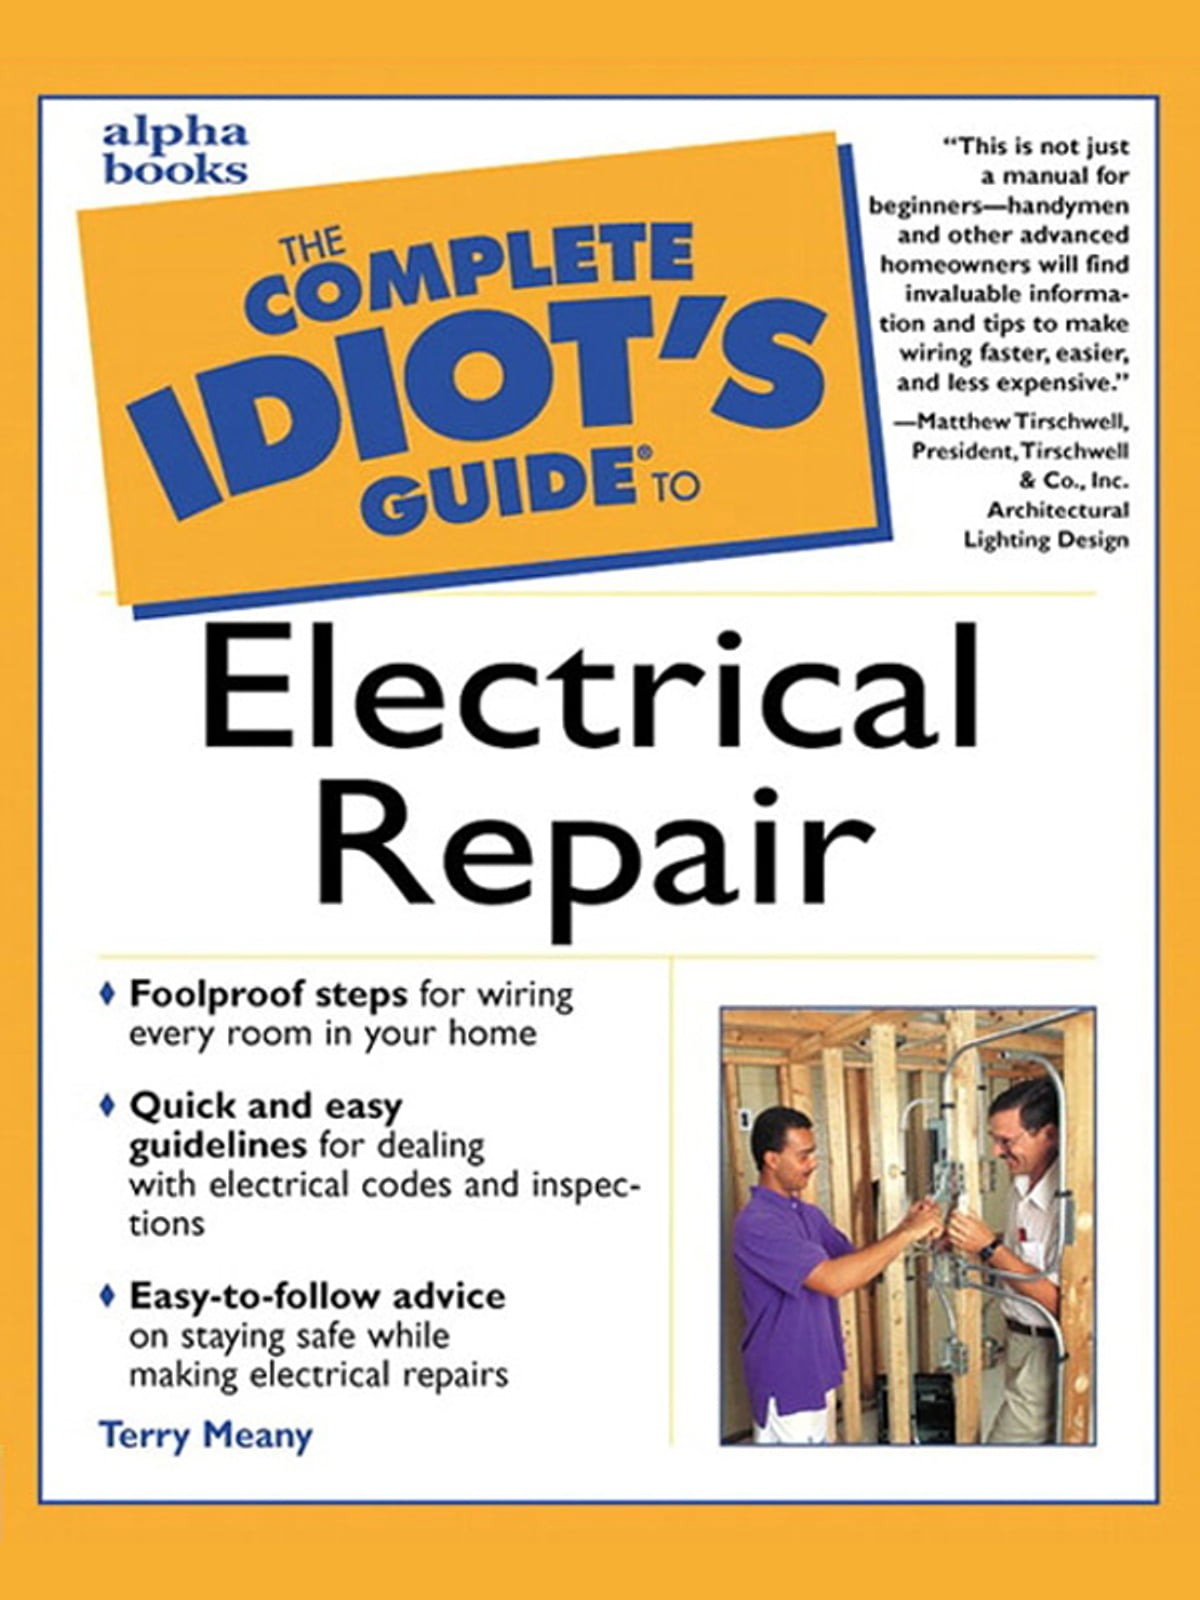 The Complete Idiots Guide To Electrical Repair Ebook By Terry Meany Audels Wiring Diagrams For Light And Power Rakuten Kobo